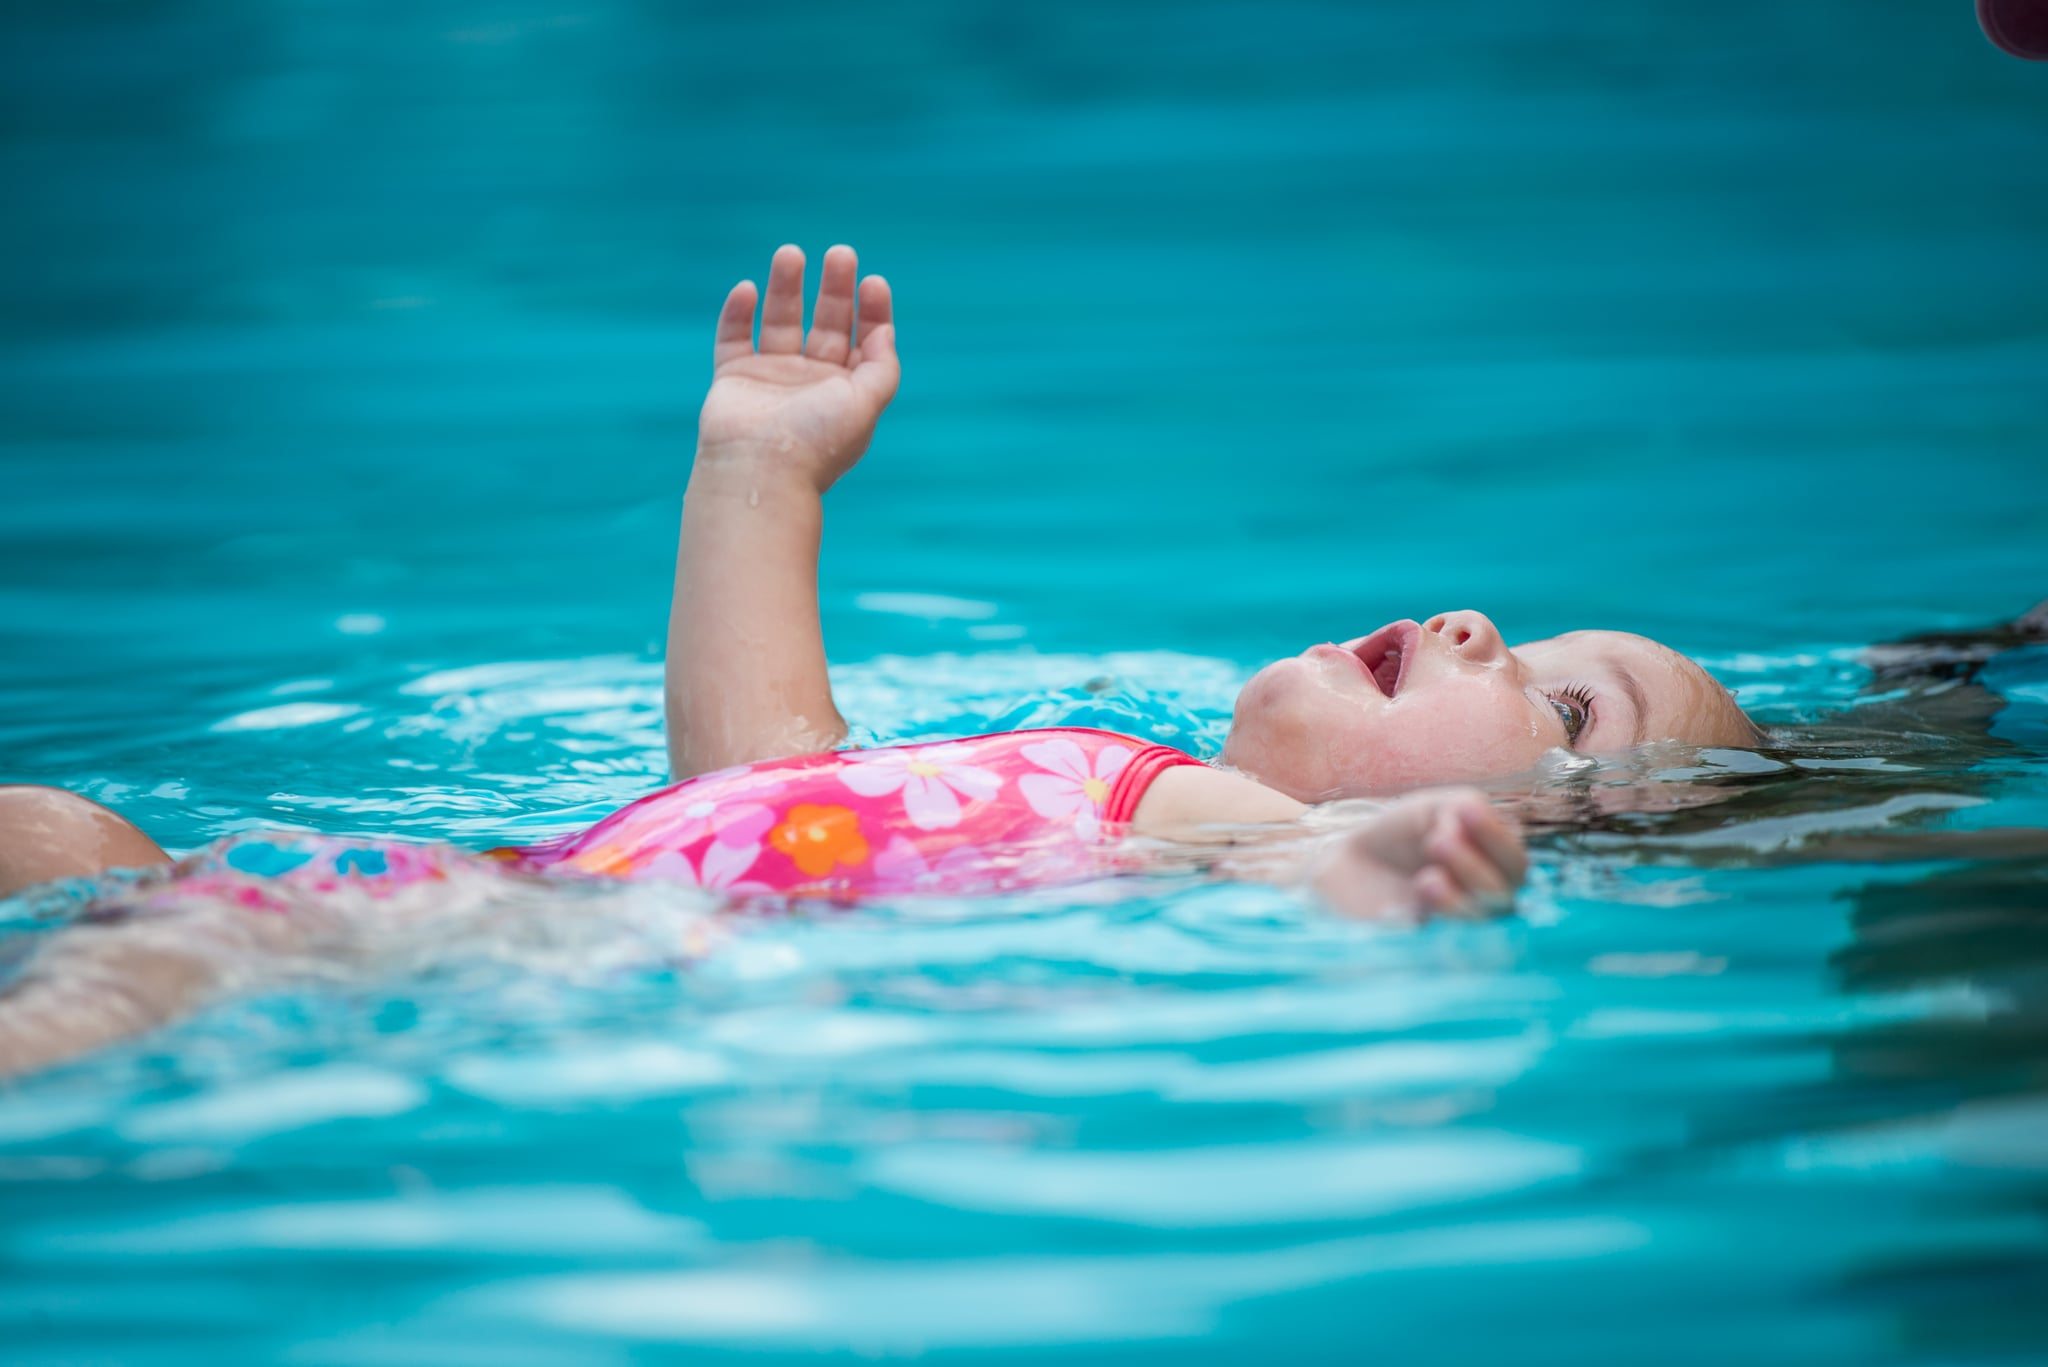 What You Should Know About Dry Drowning Image